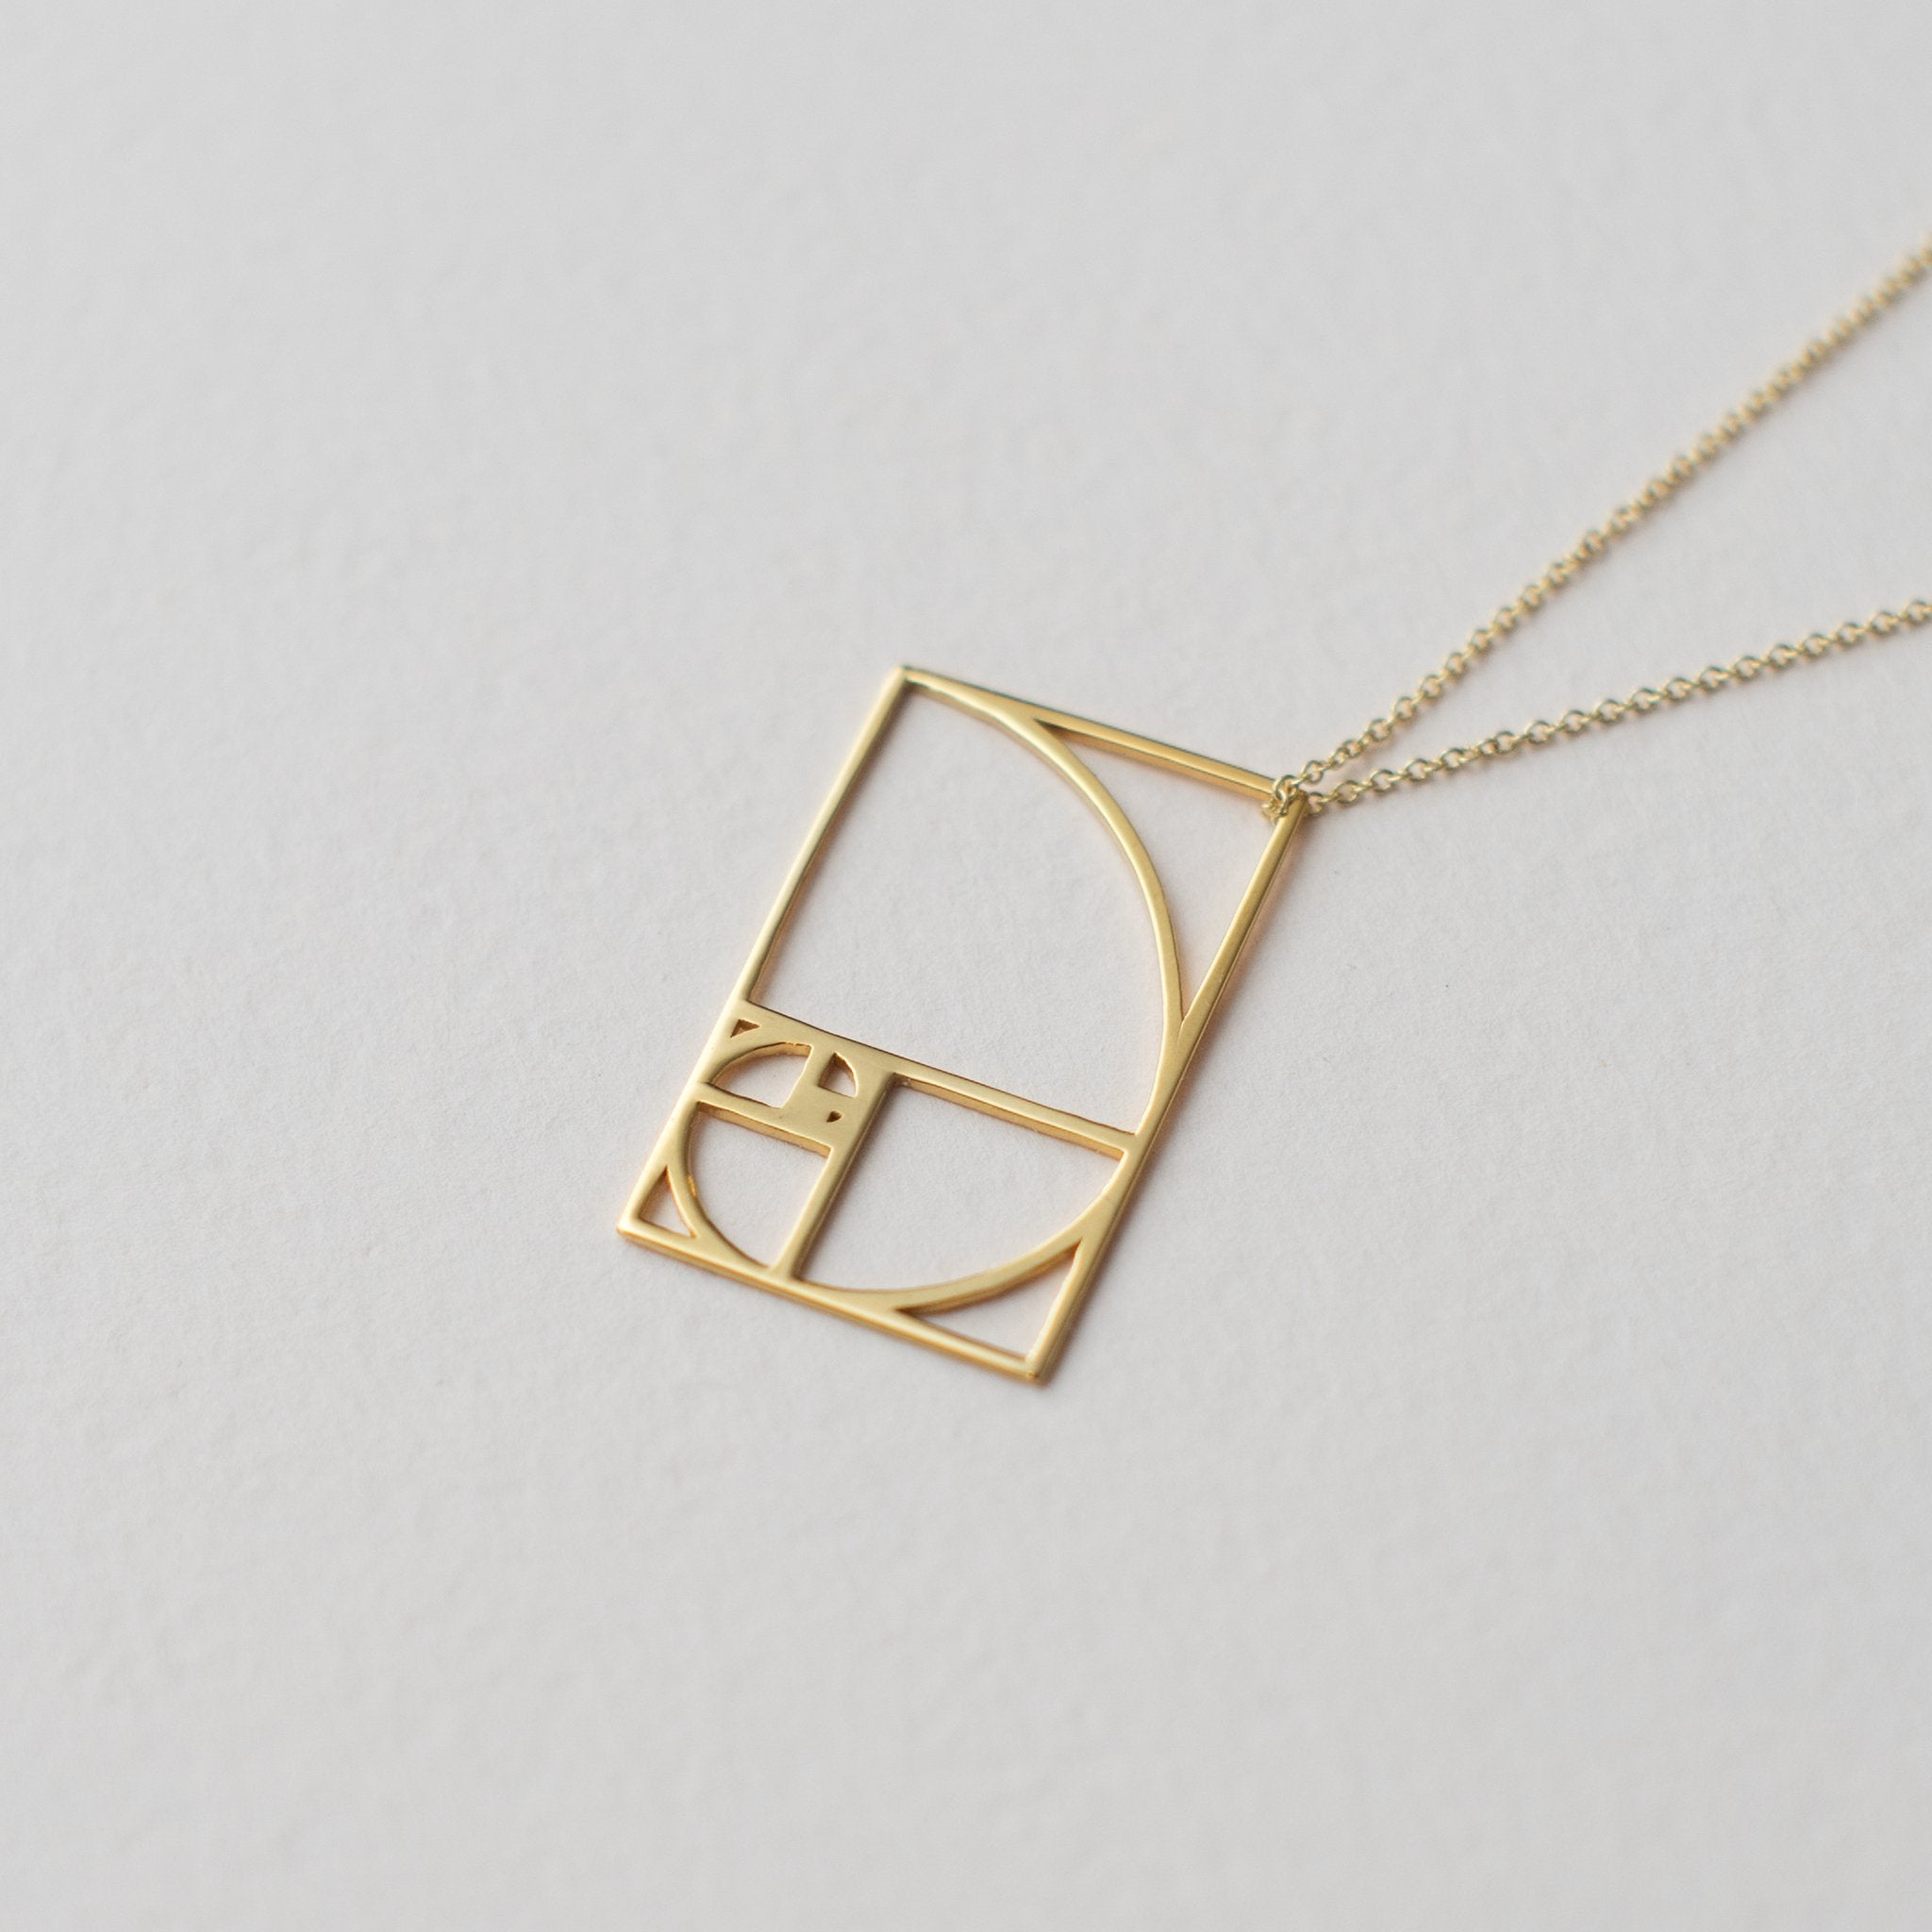 Golden Ratio in Gold